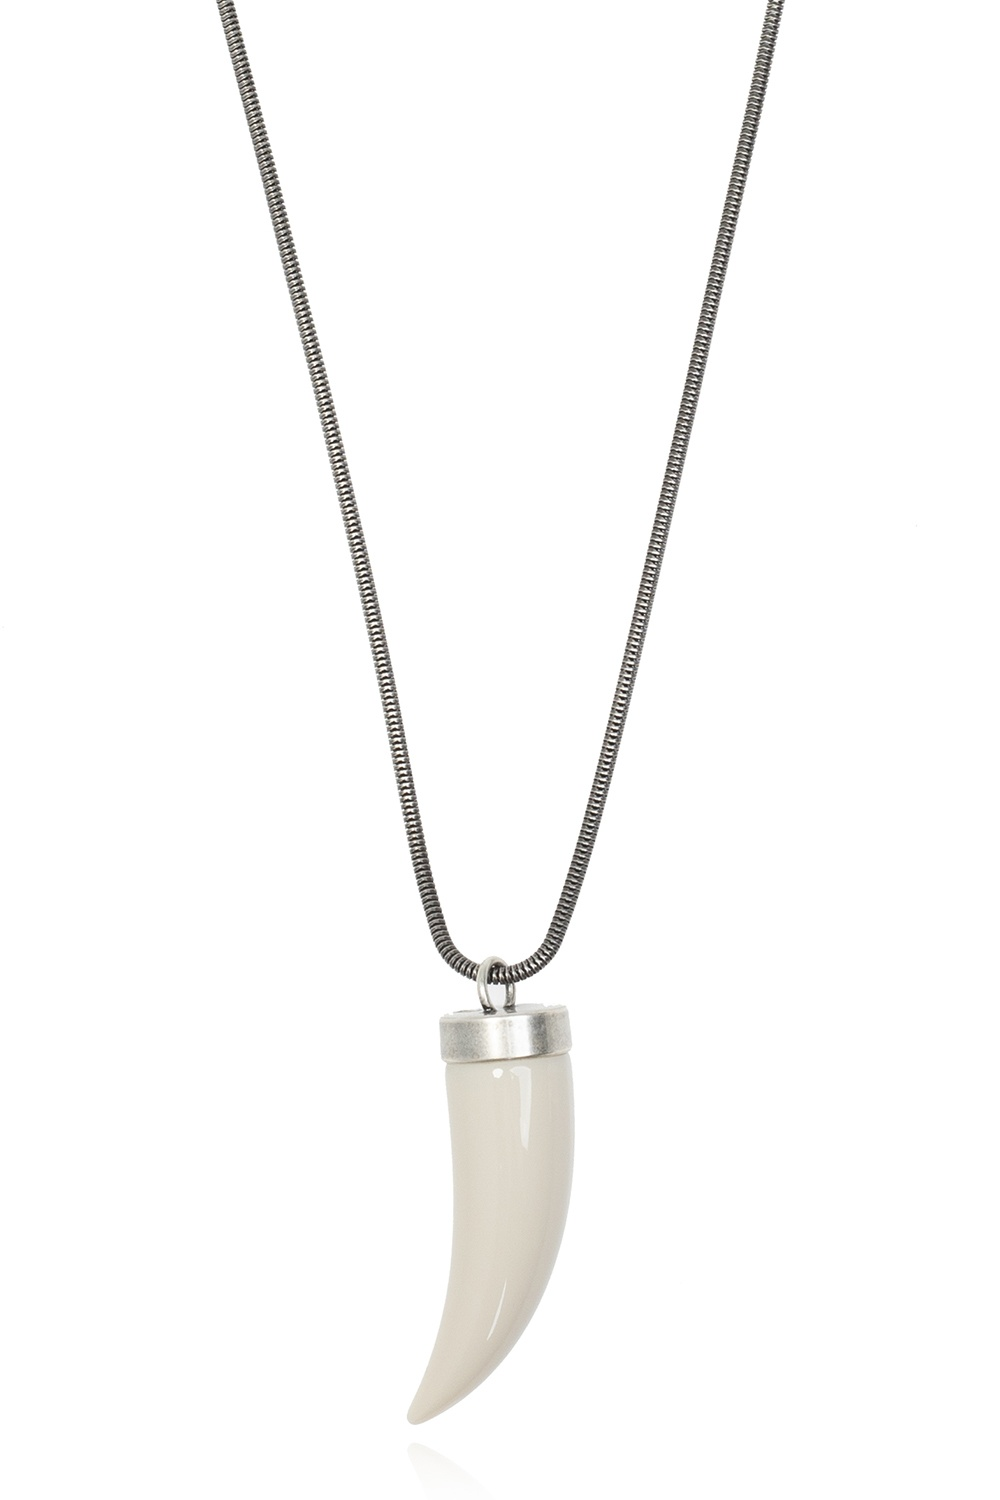 Zadig & Voltaire Necklace with charm